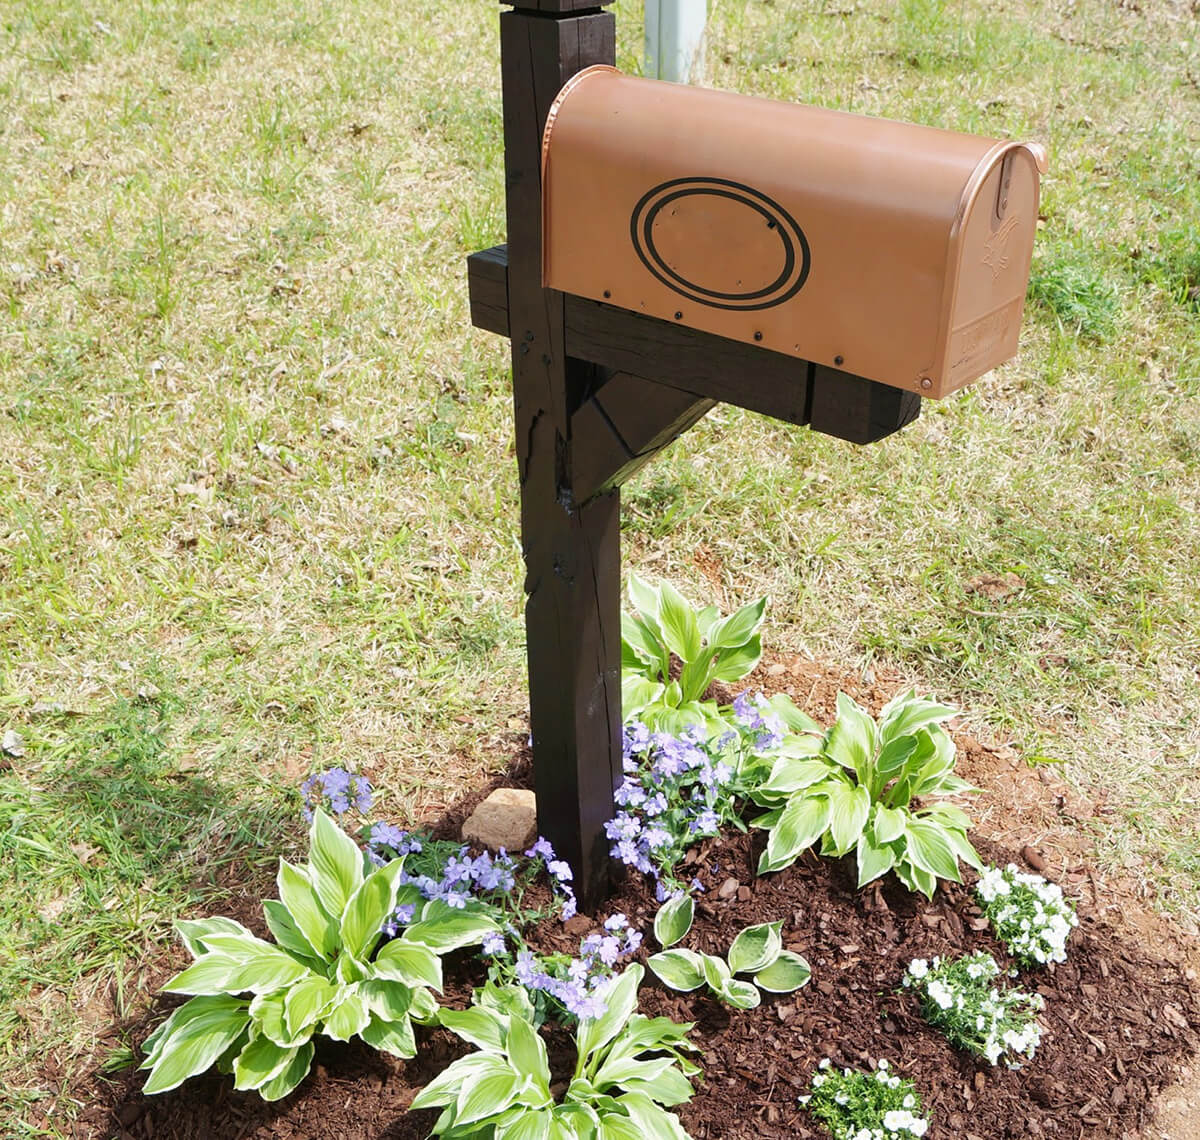 15 Awesome DIY Mailbox Projects Your Neighbors Will Envy